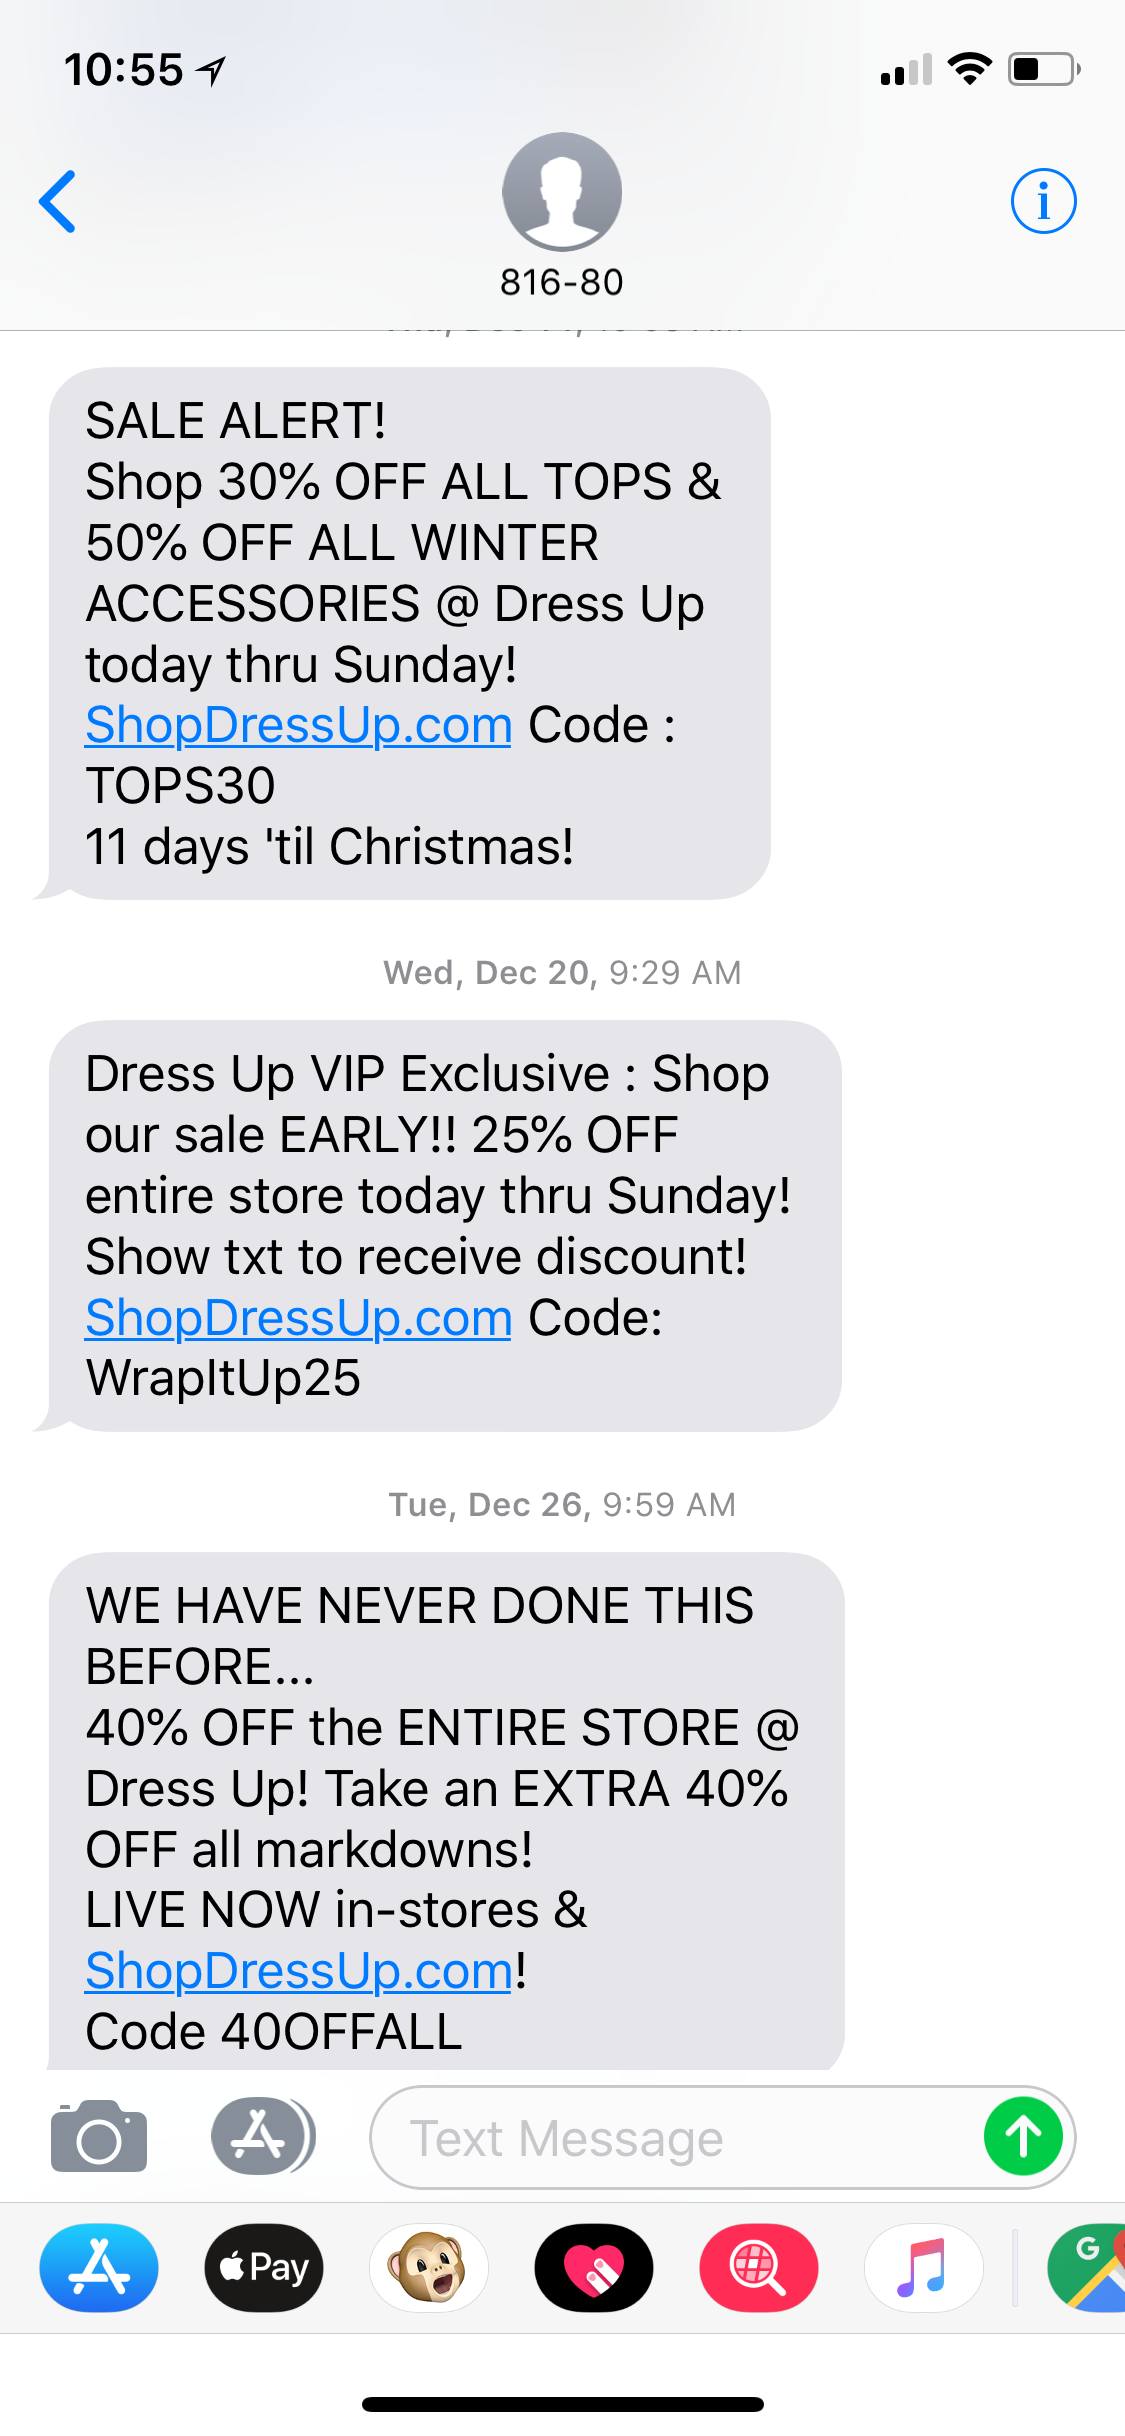 DressUp SMS Marketing Campaigns Example | WhatCounts - Enterprise ...